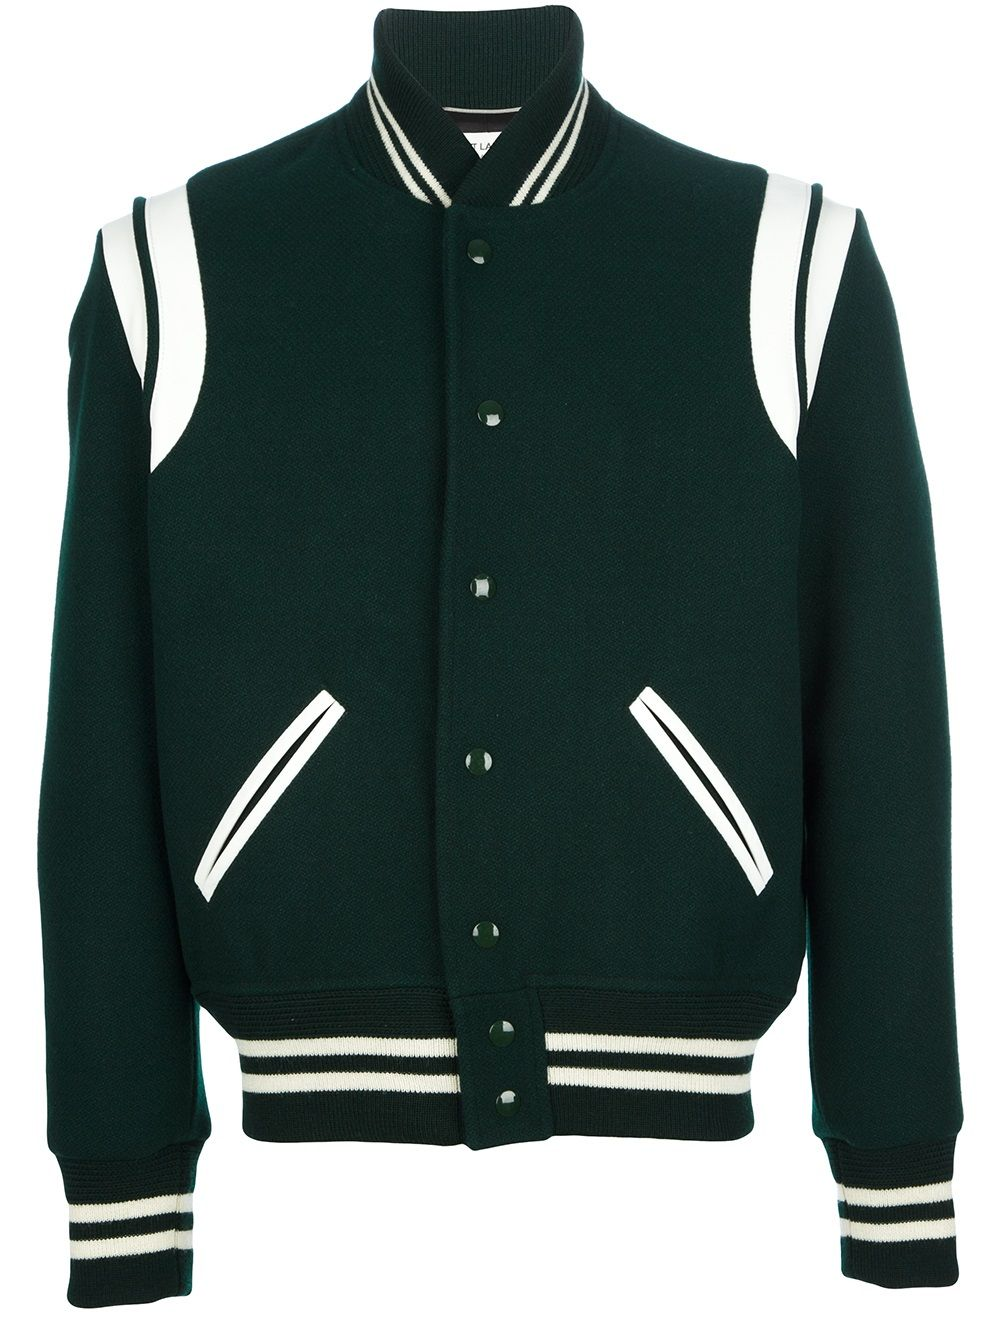 Saint Laurent Contrast Varsity Jacket | Blue/Green | Pinterest ...